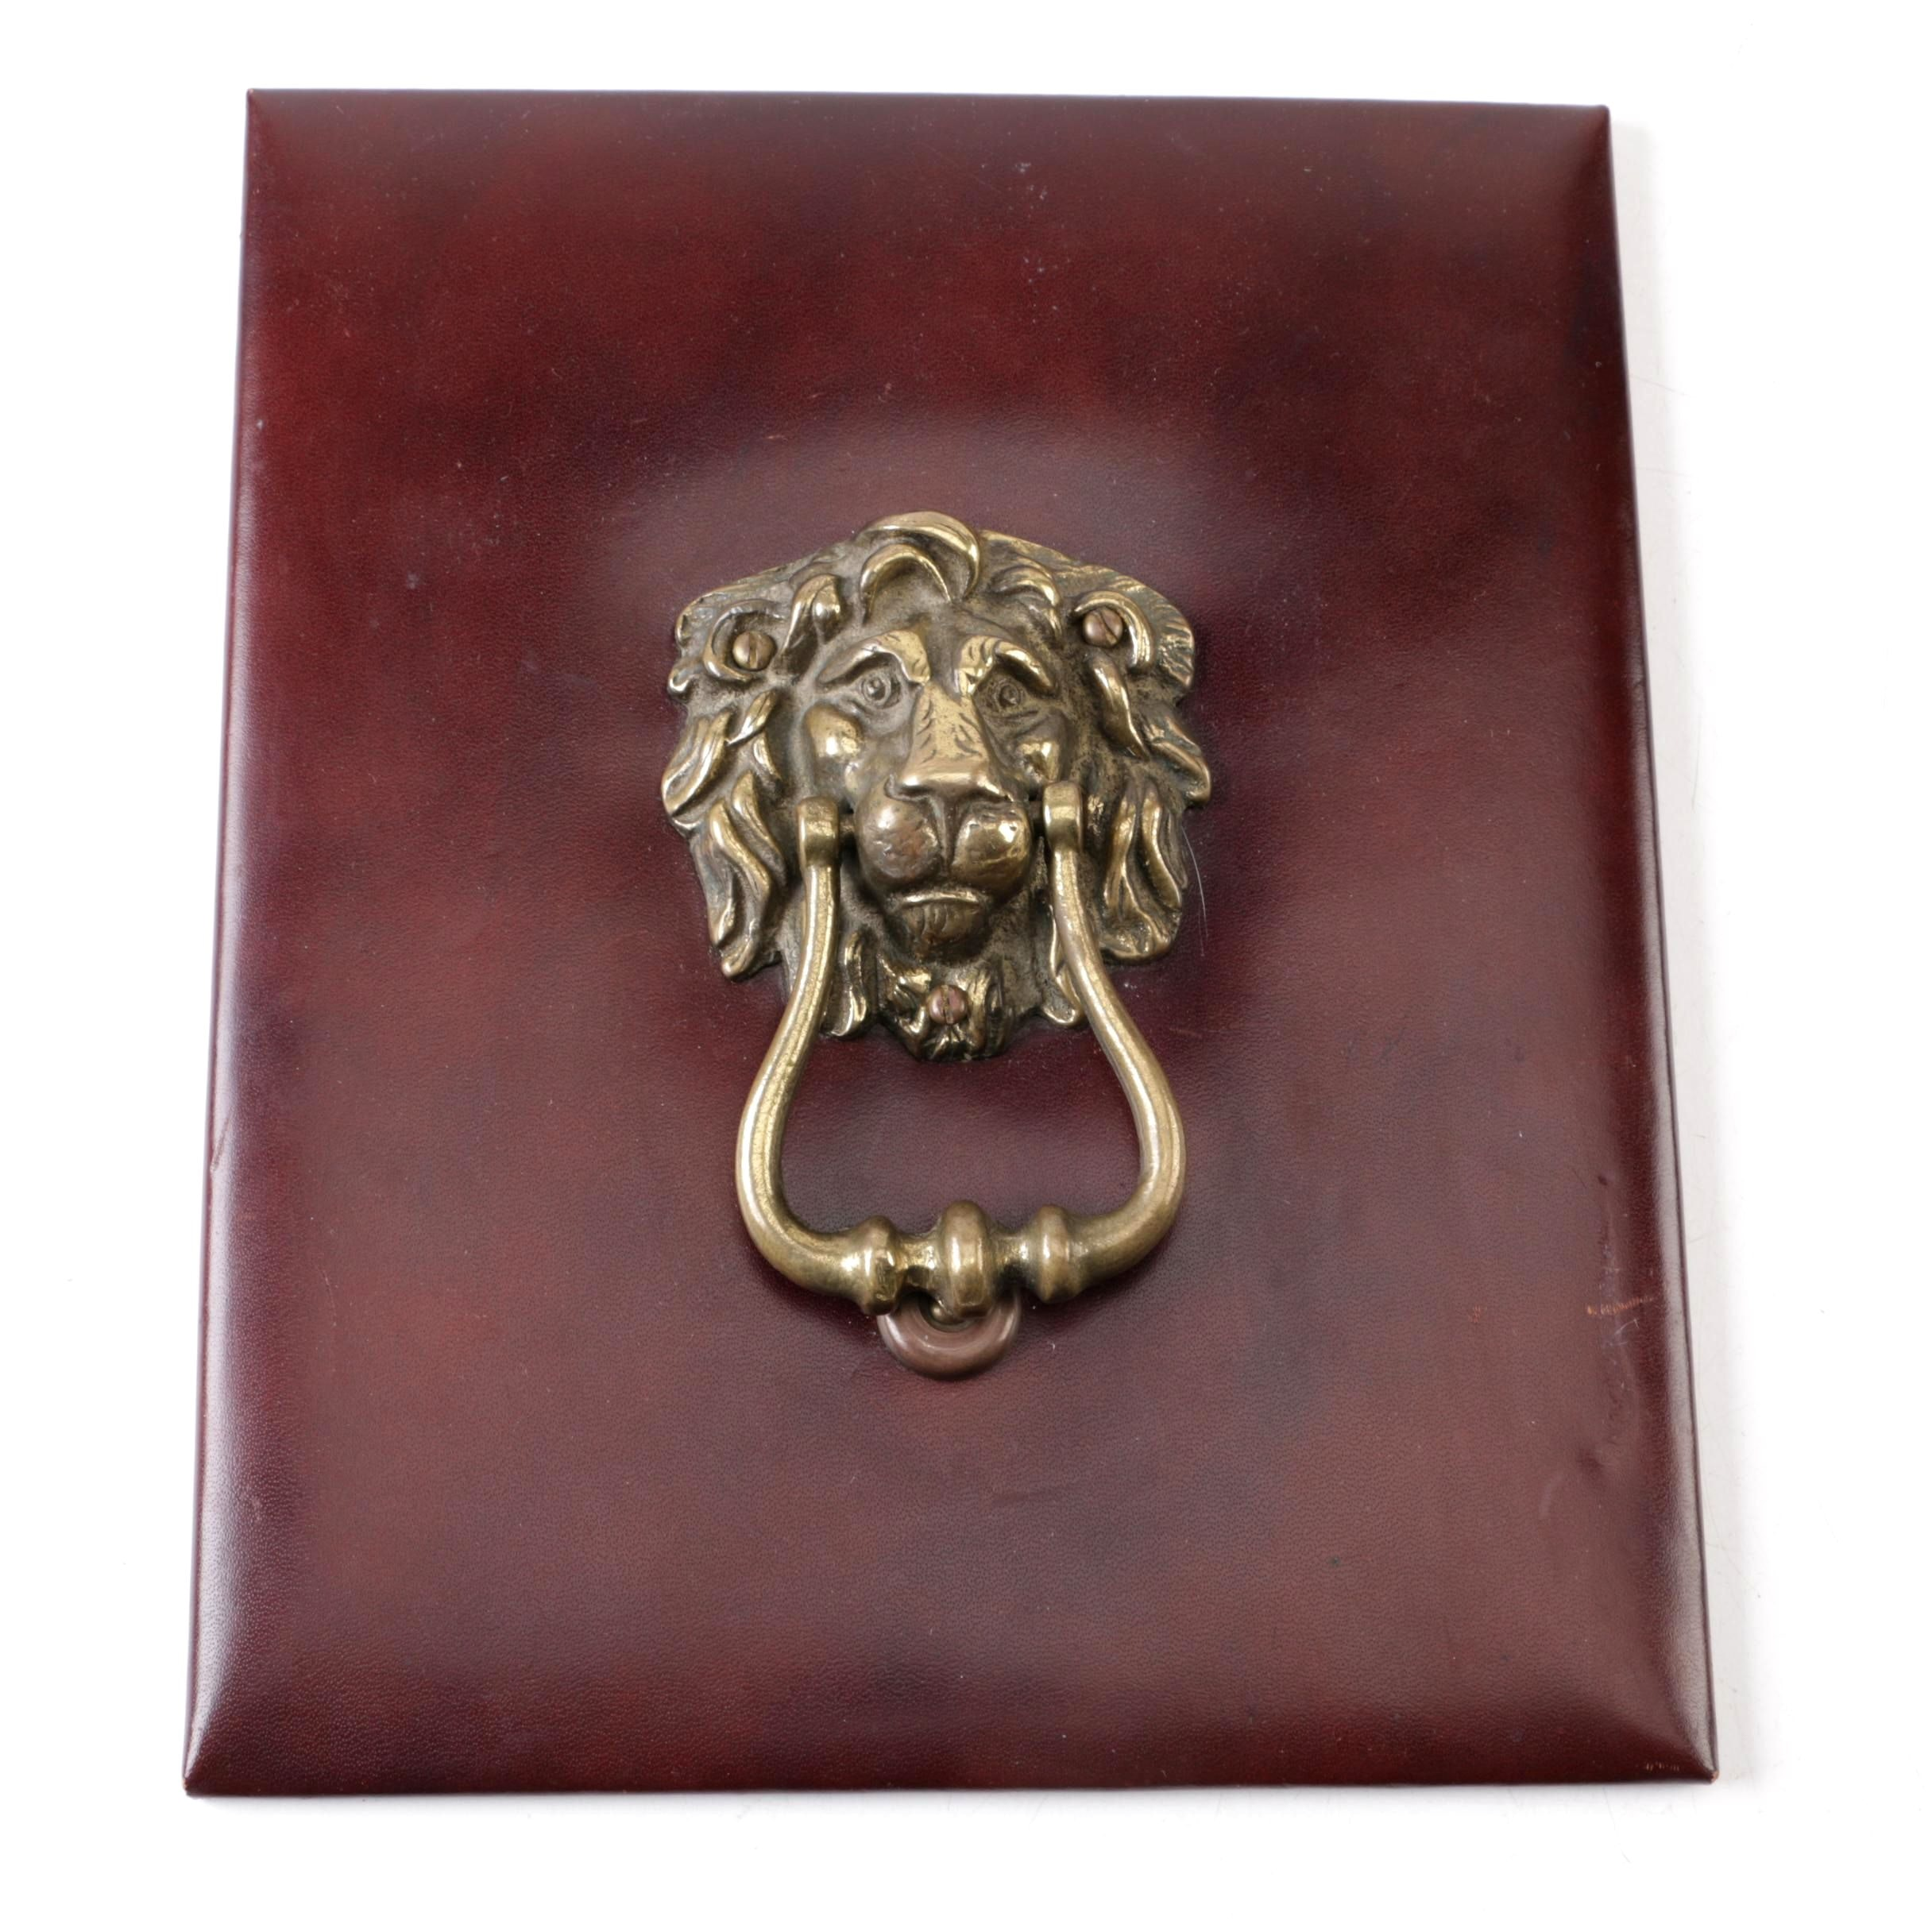 Brass Lion Mask Door Knocker With Leather Backing Board